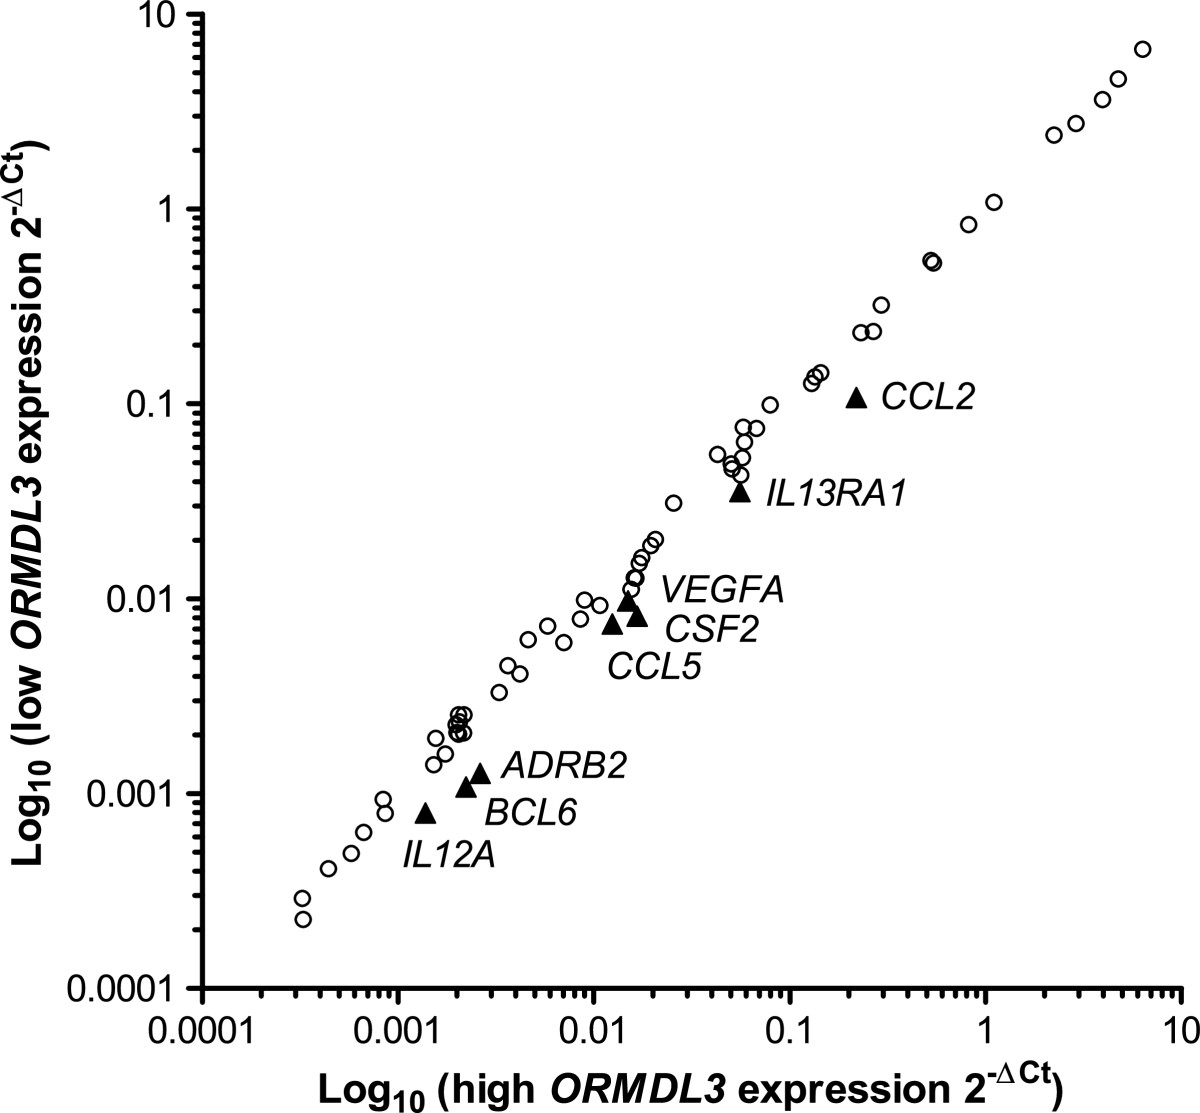 http://static-content.springer.com/image/art%3A10.1186%2F1710-1492-9-4/MediaObjects/13223_2012_Article_372_Fig4_HTML.jpg